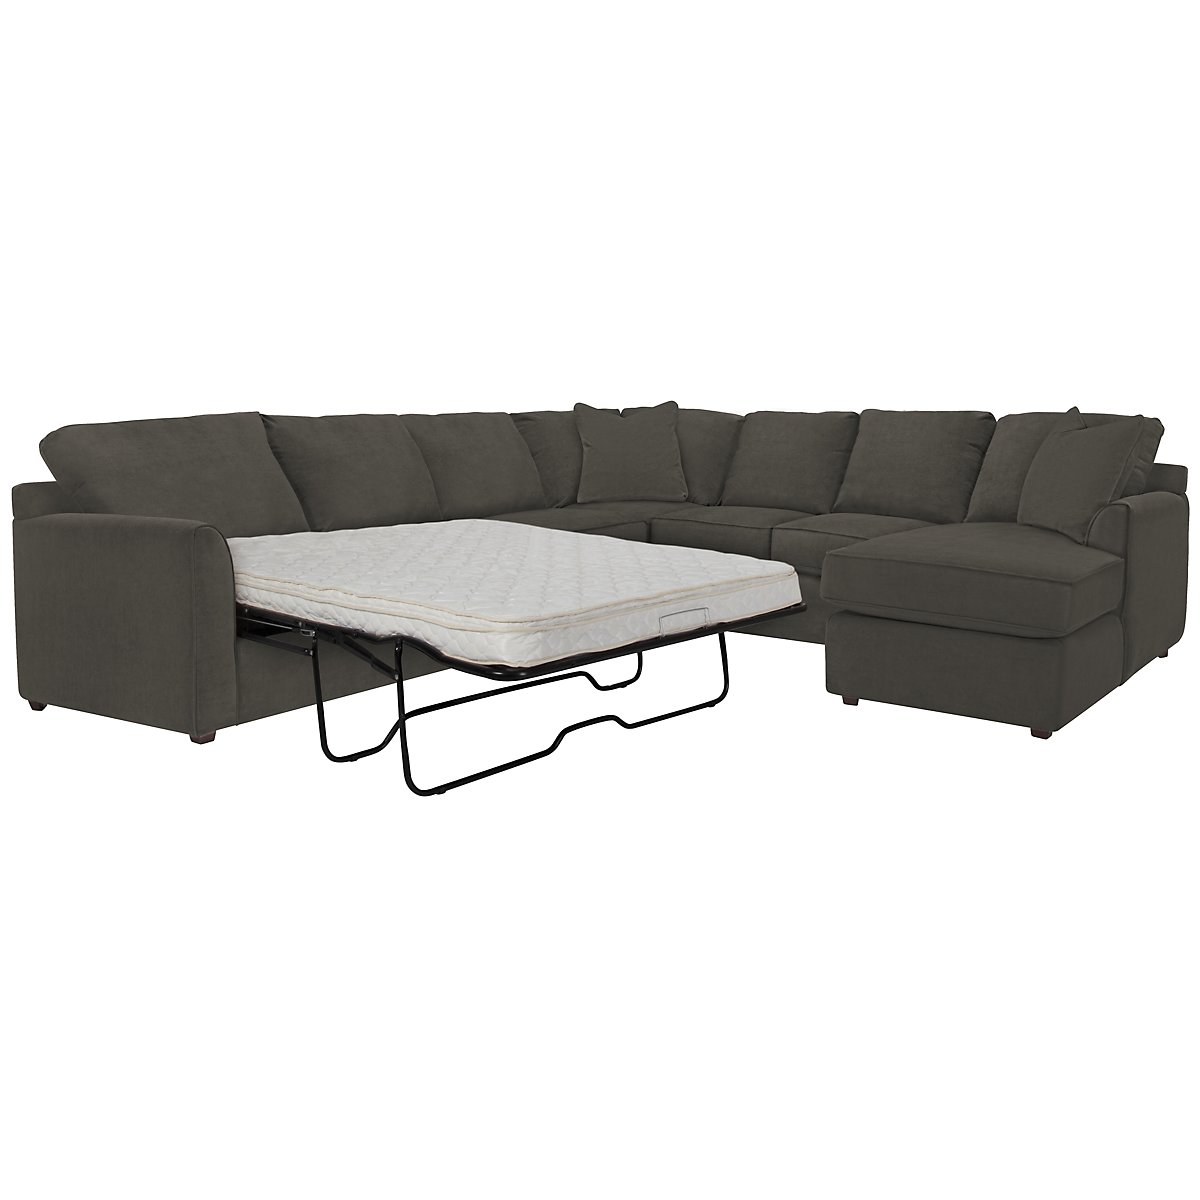 Express3 Dark Gray Microfiber Right Chaise Innerspring Sleeper Sectional